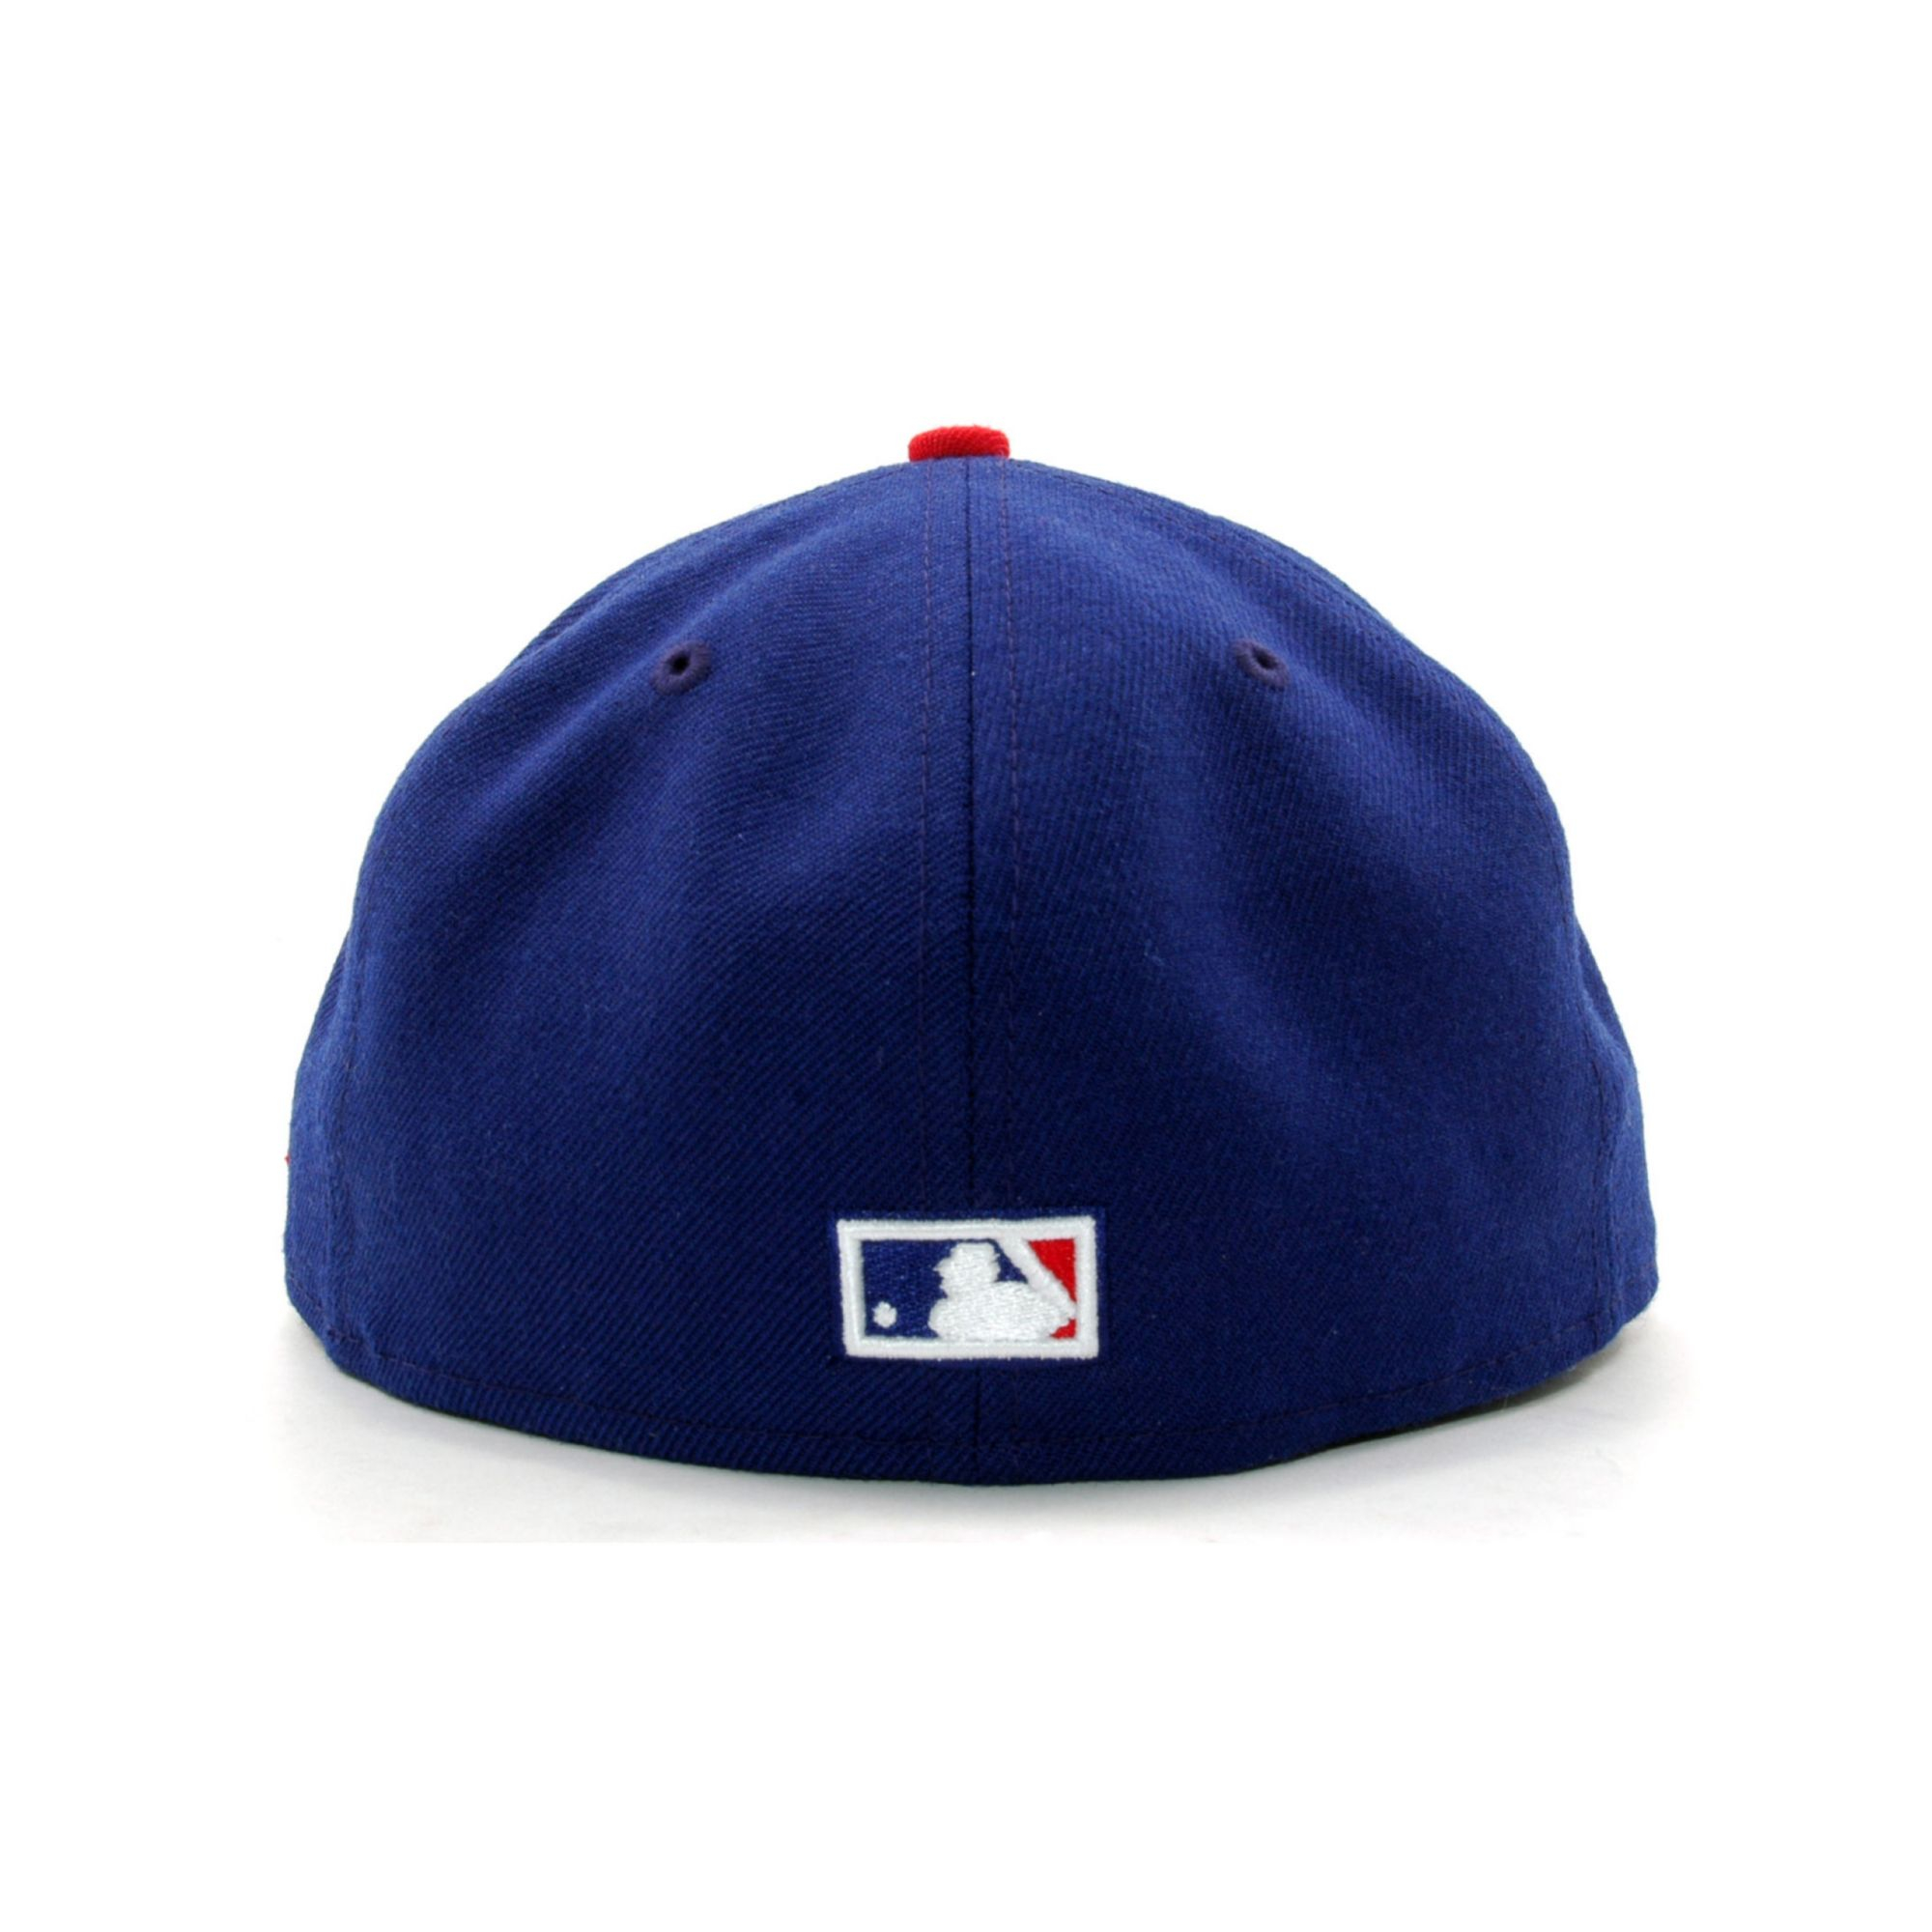 online store f59bc 1c175 order texas rangers cooperstown hat bbb58 04369